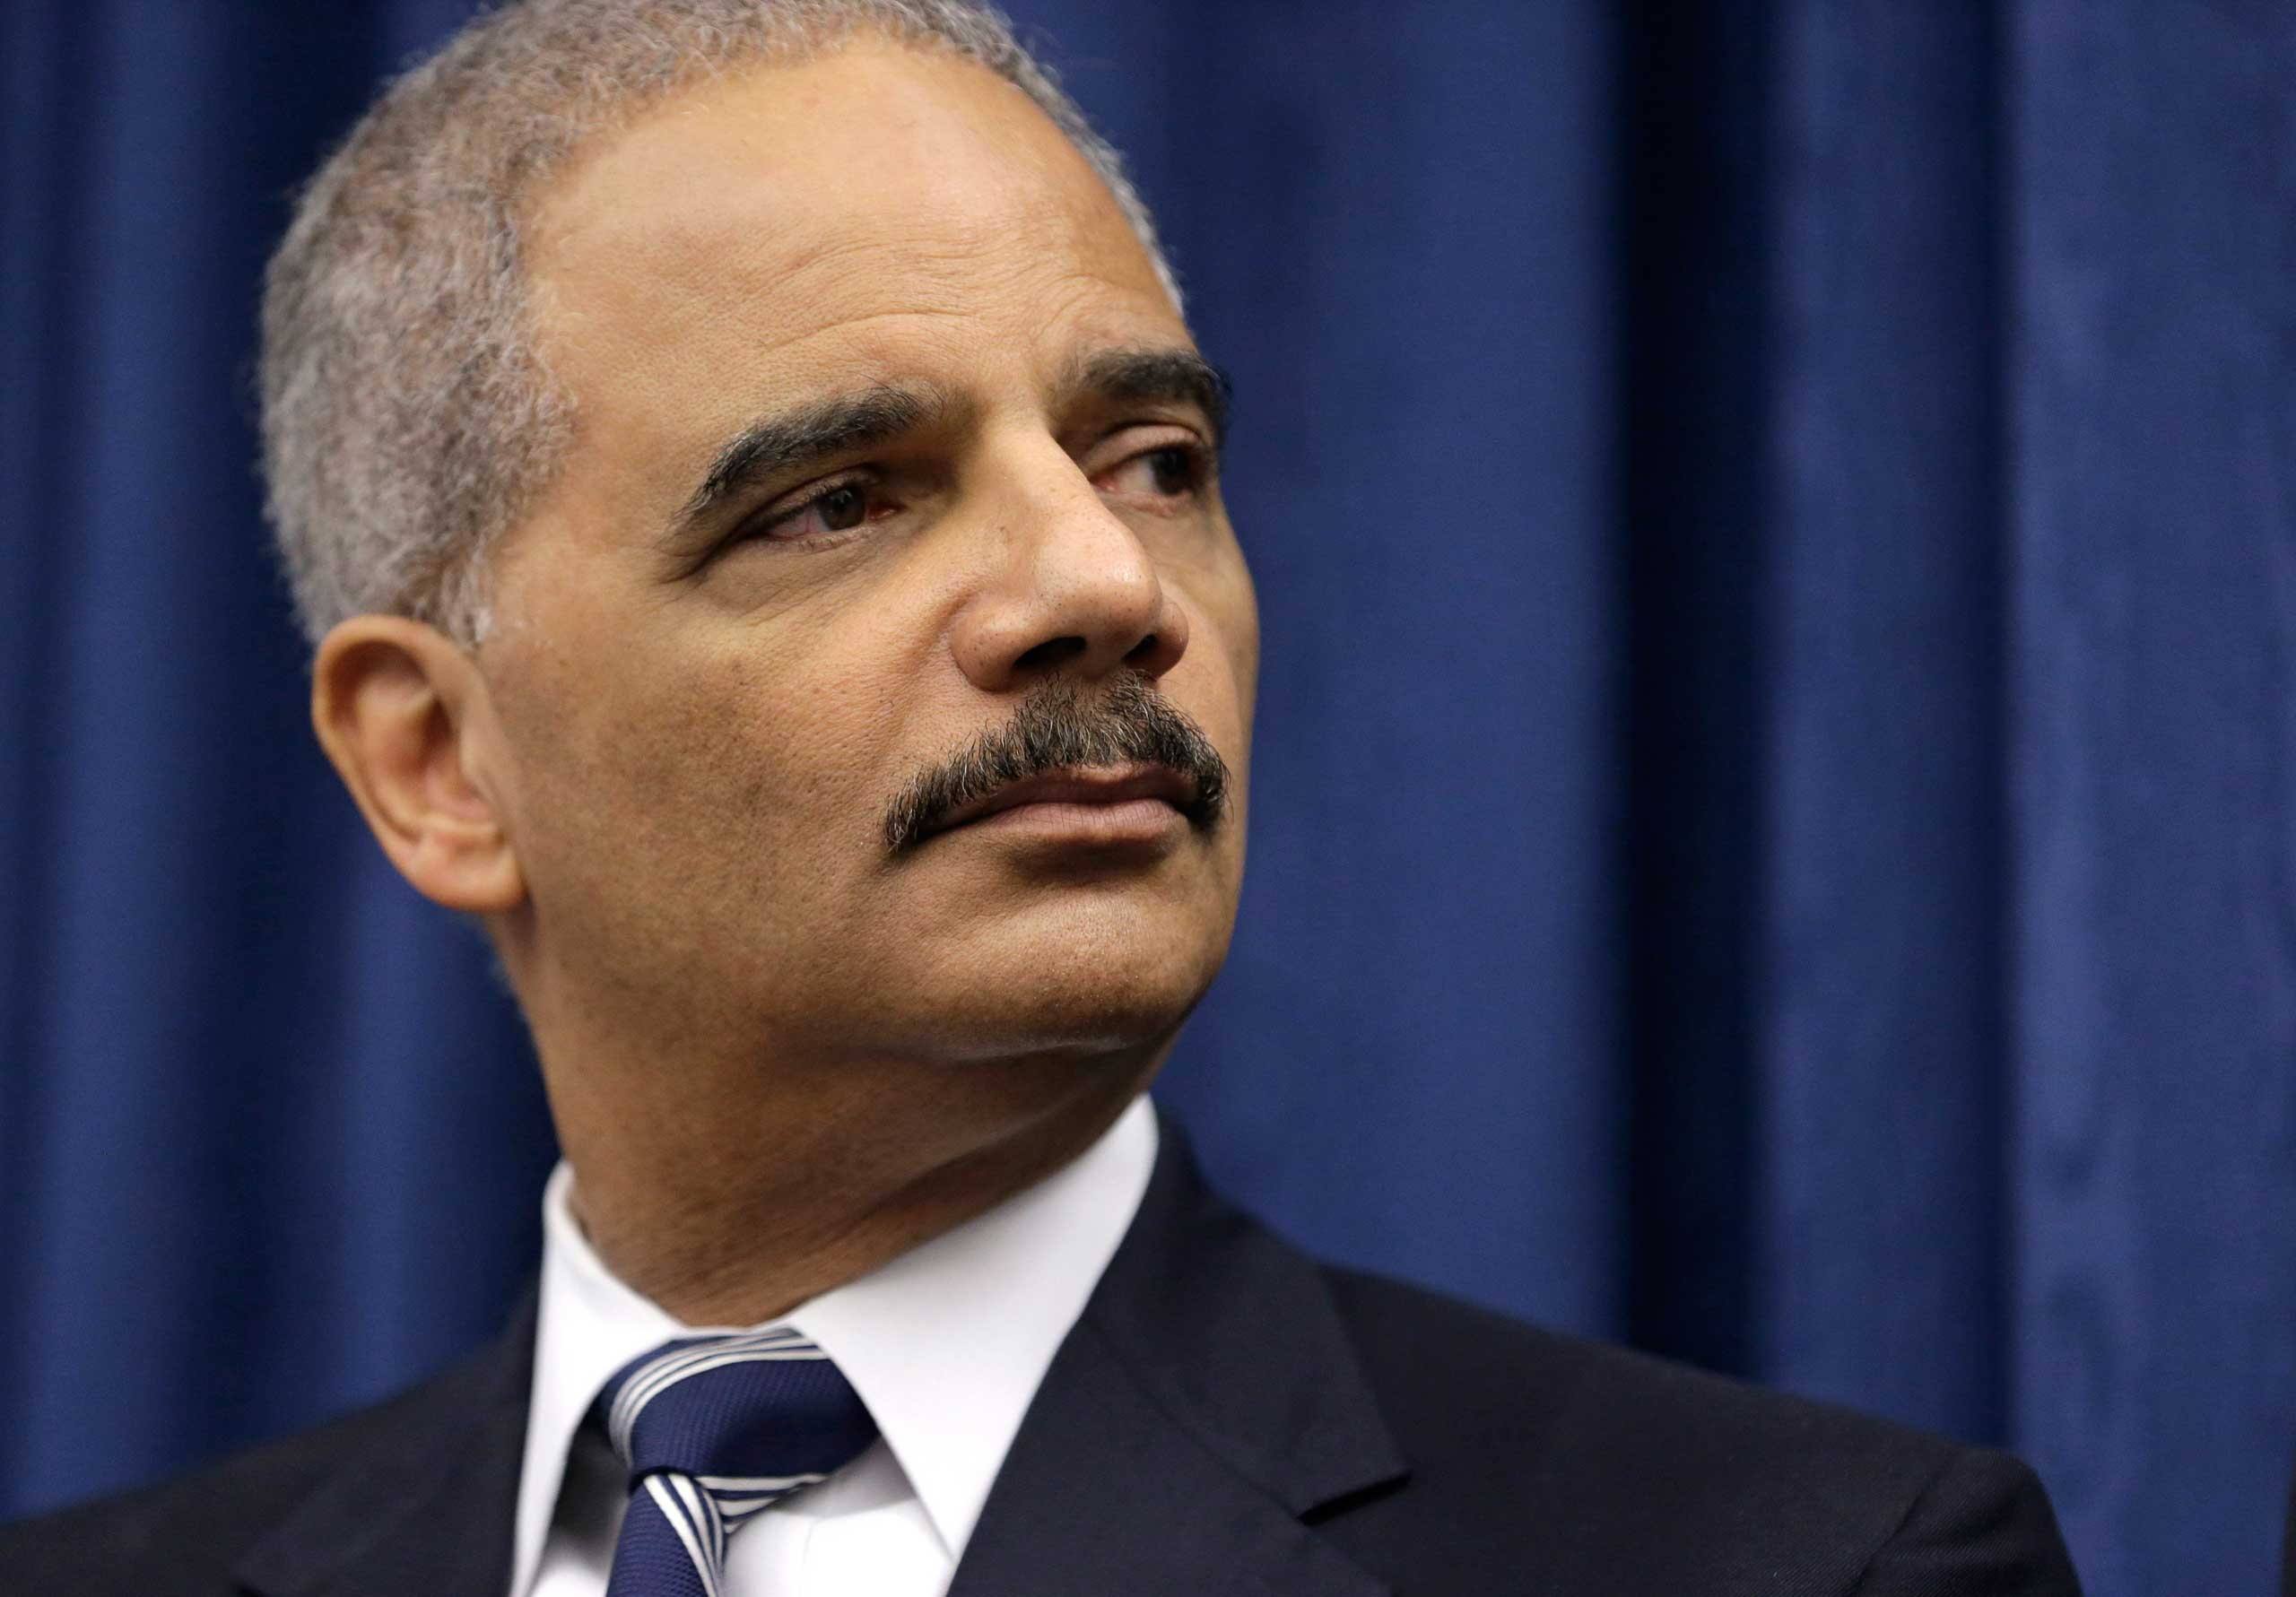 U. S. Attorney General Eric Holder speaks during a news conference before a roundtable meeting in Cleveland, Ohio on Dec. 4, 2014.